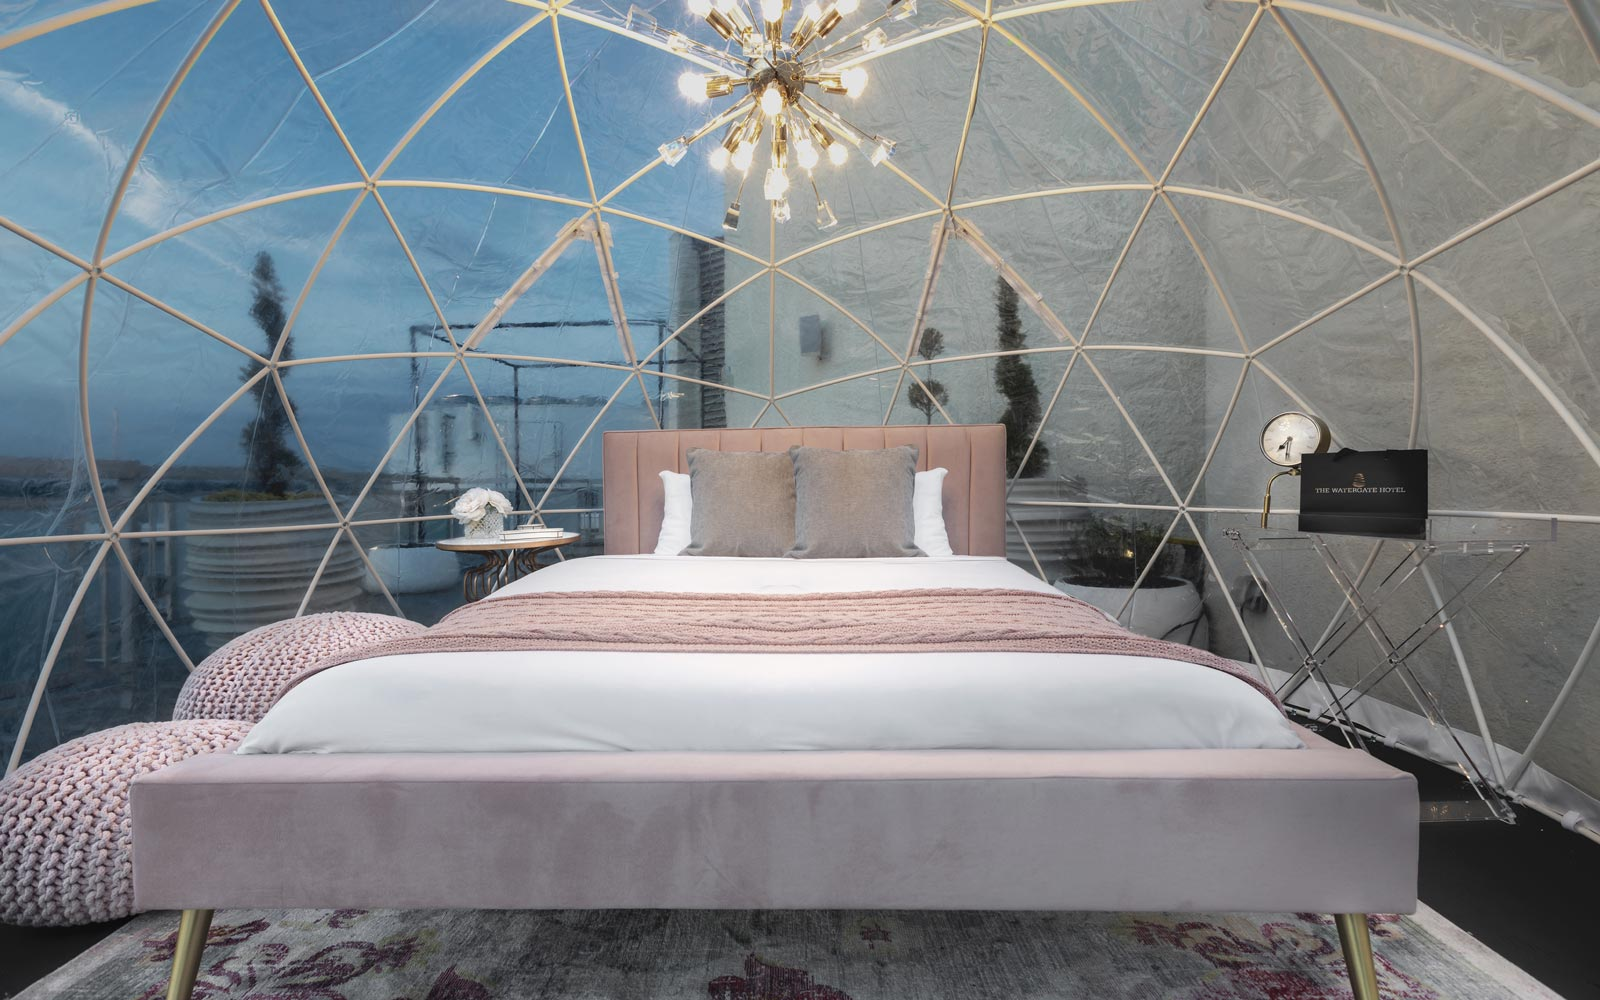 Watergate Hotel rooftop glamping